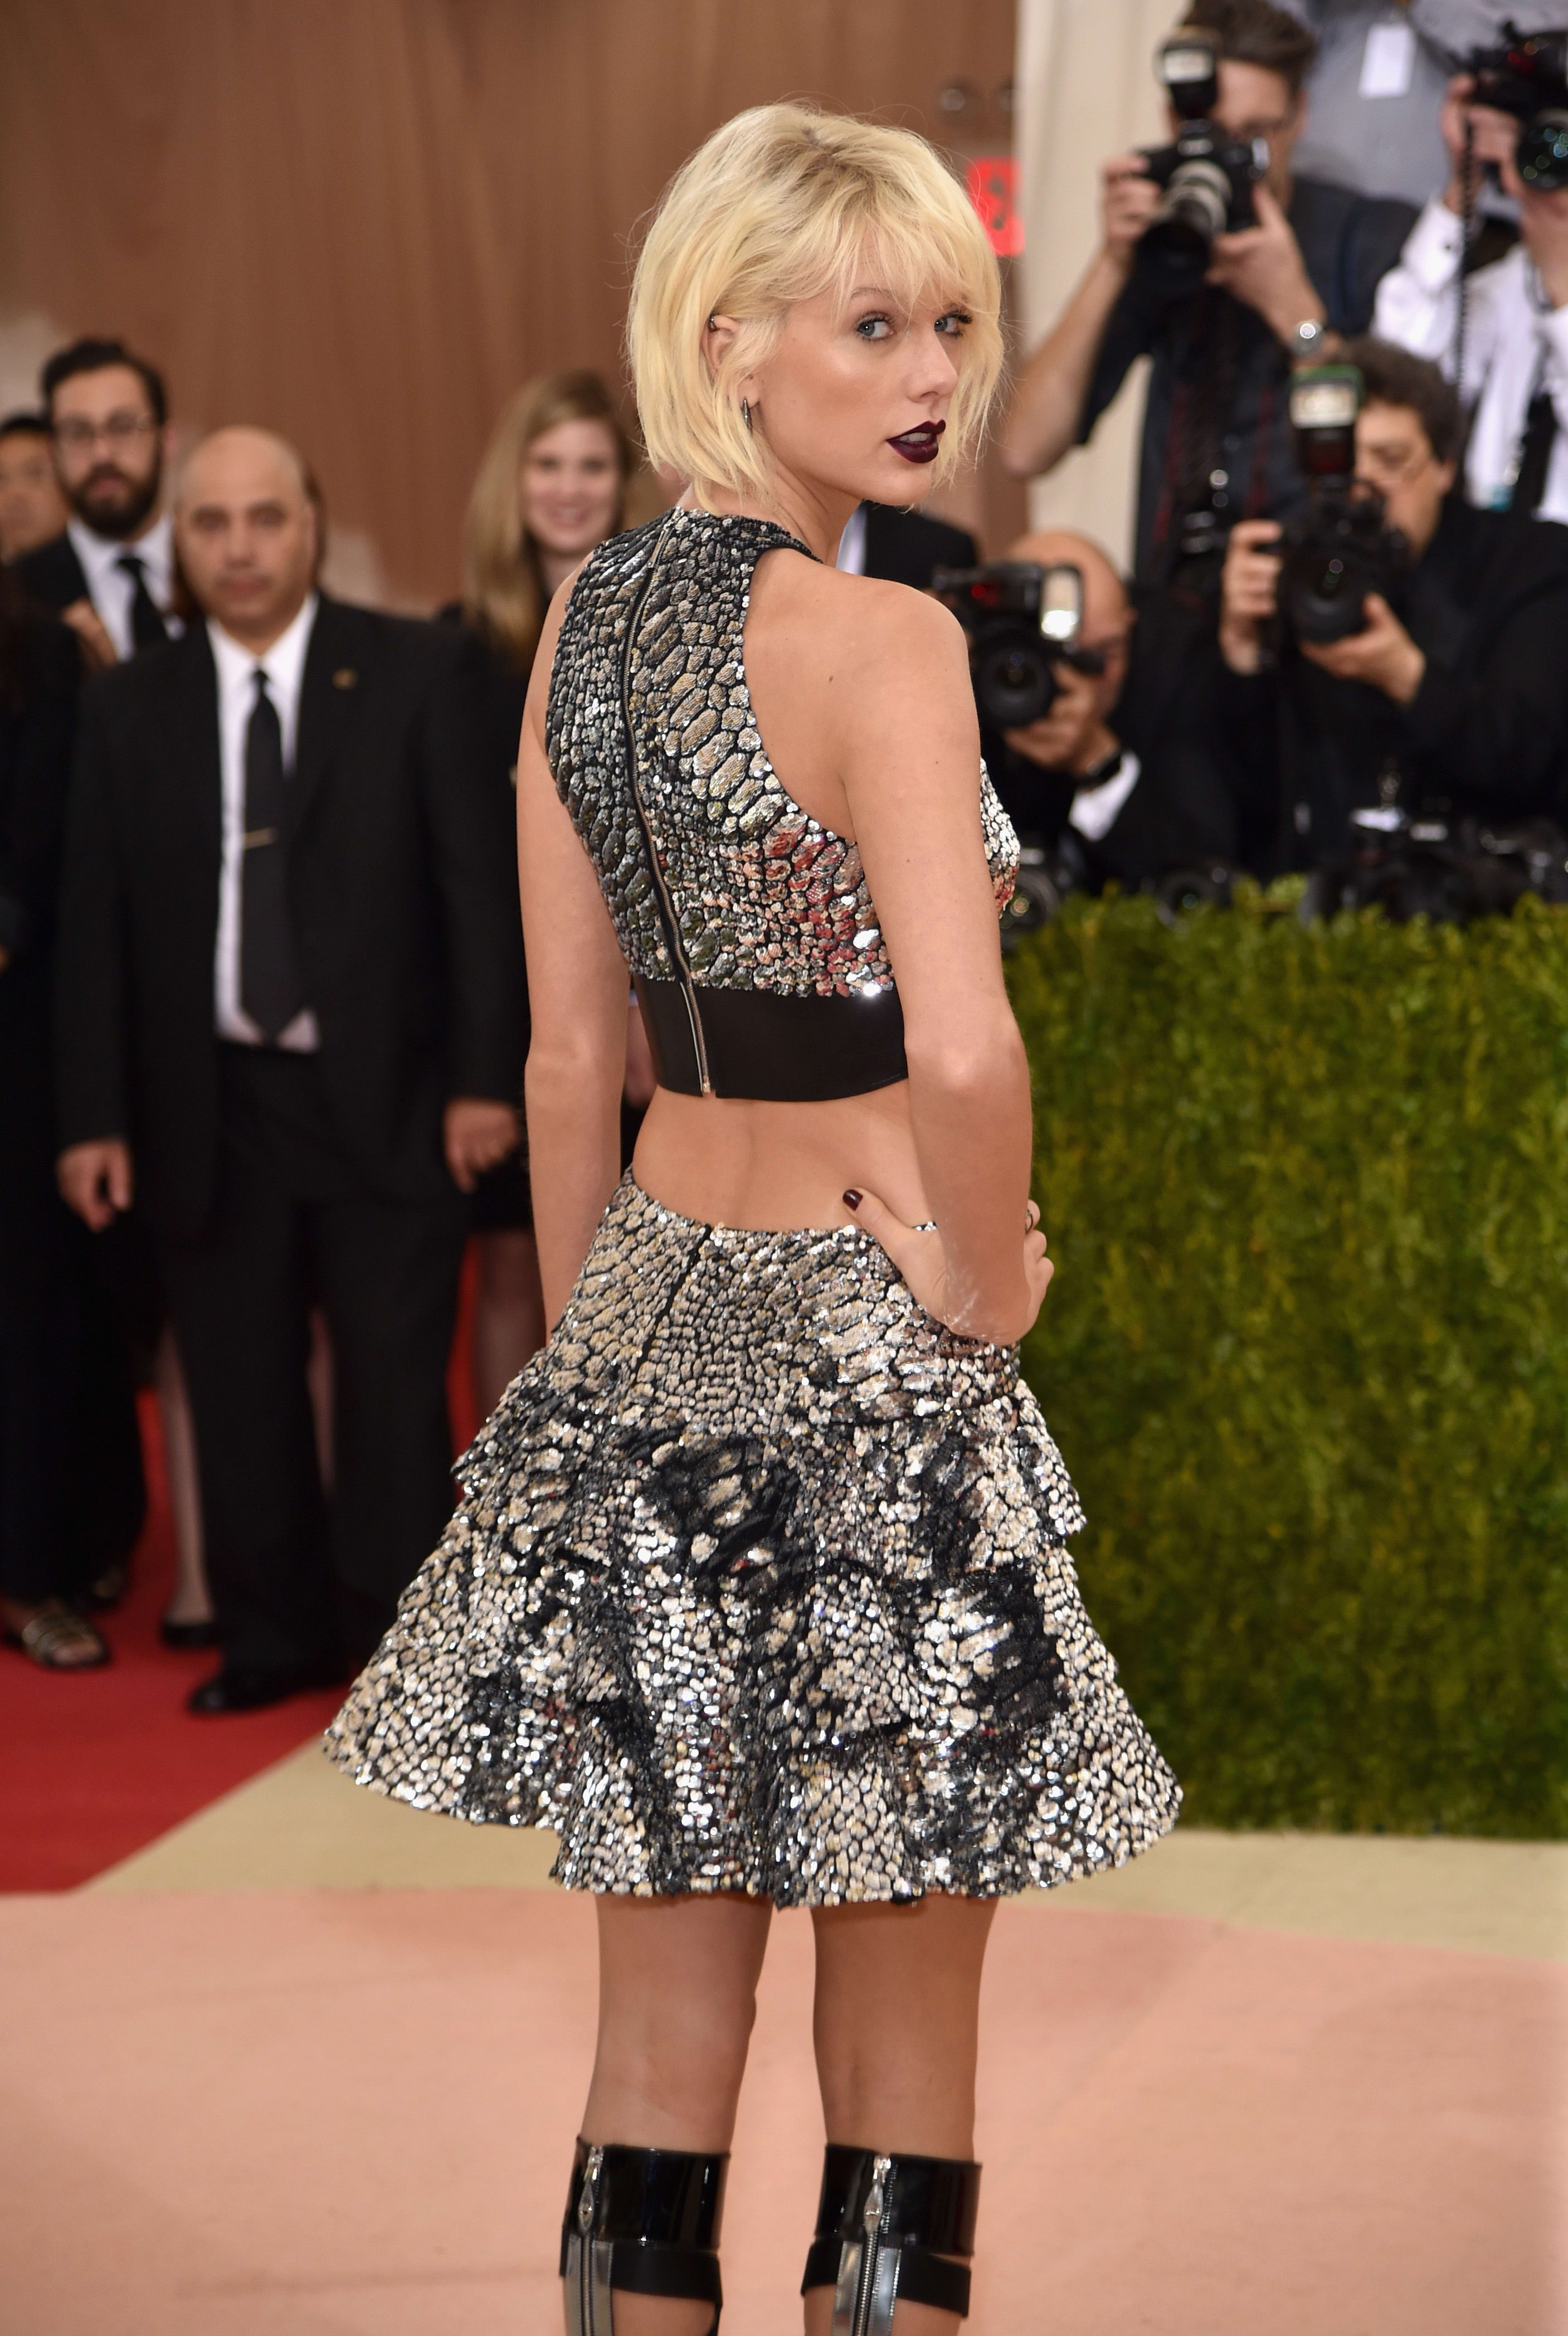 Taylor Swift Butt Implant Rumors Confirmed The Hollywood Gossip